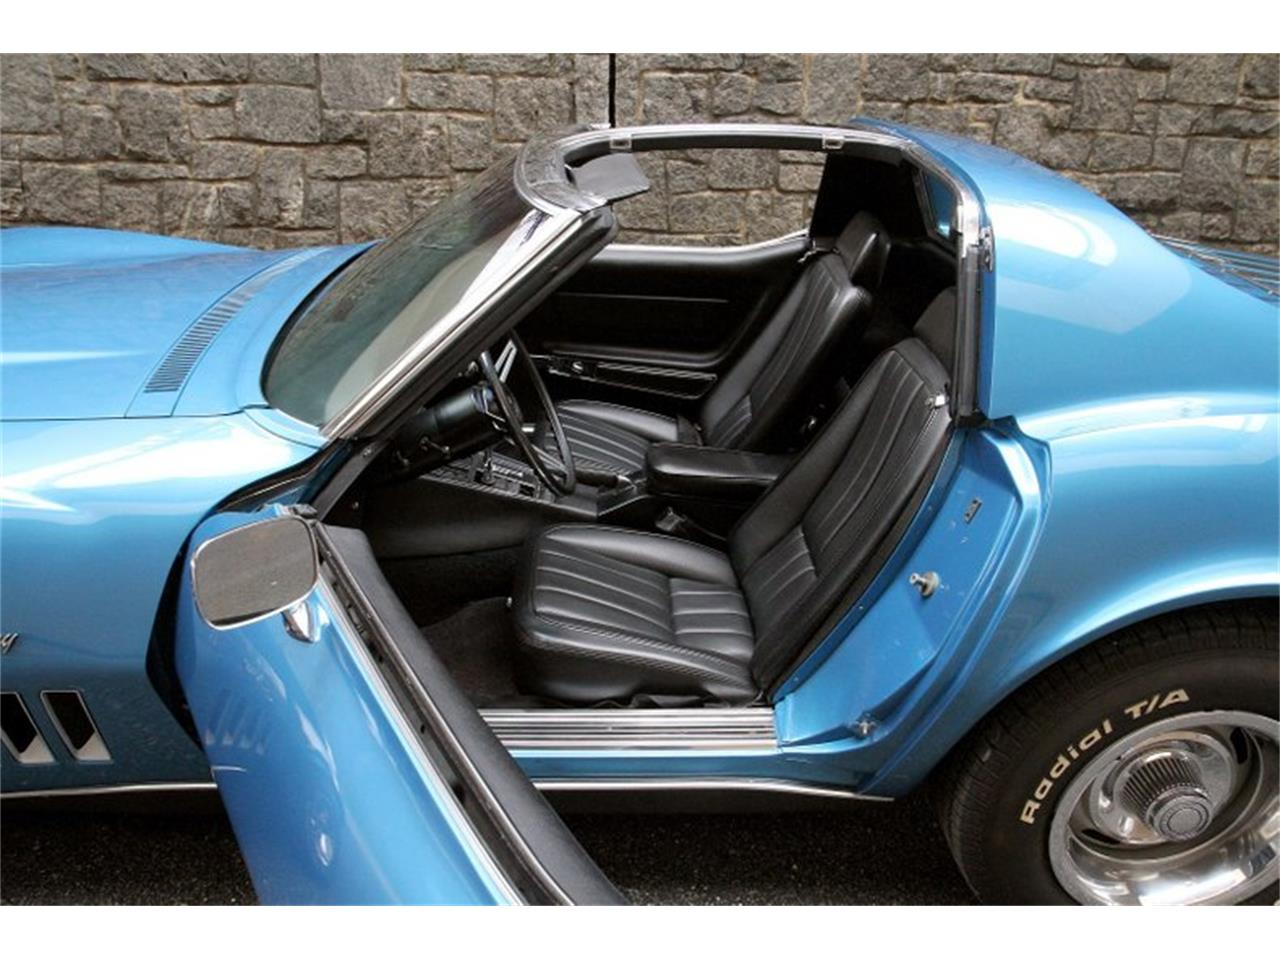 Large Picture of Classic 1969 Corvette located in Atlanta Georgia Offered by Motorcar Studio - PQNZ